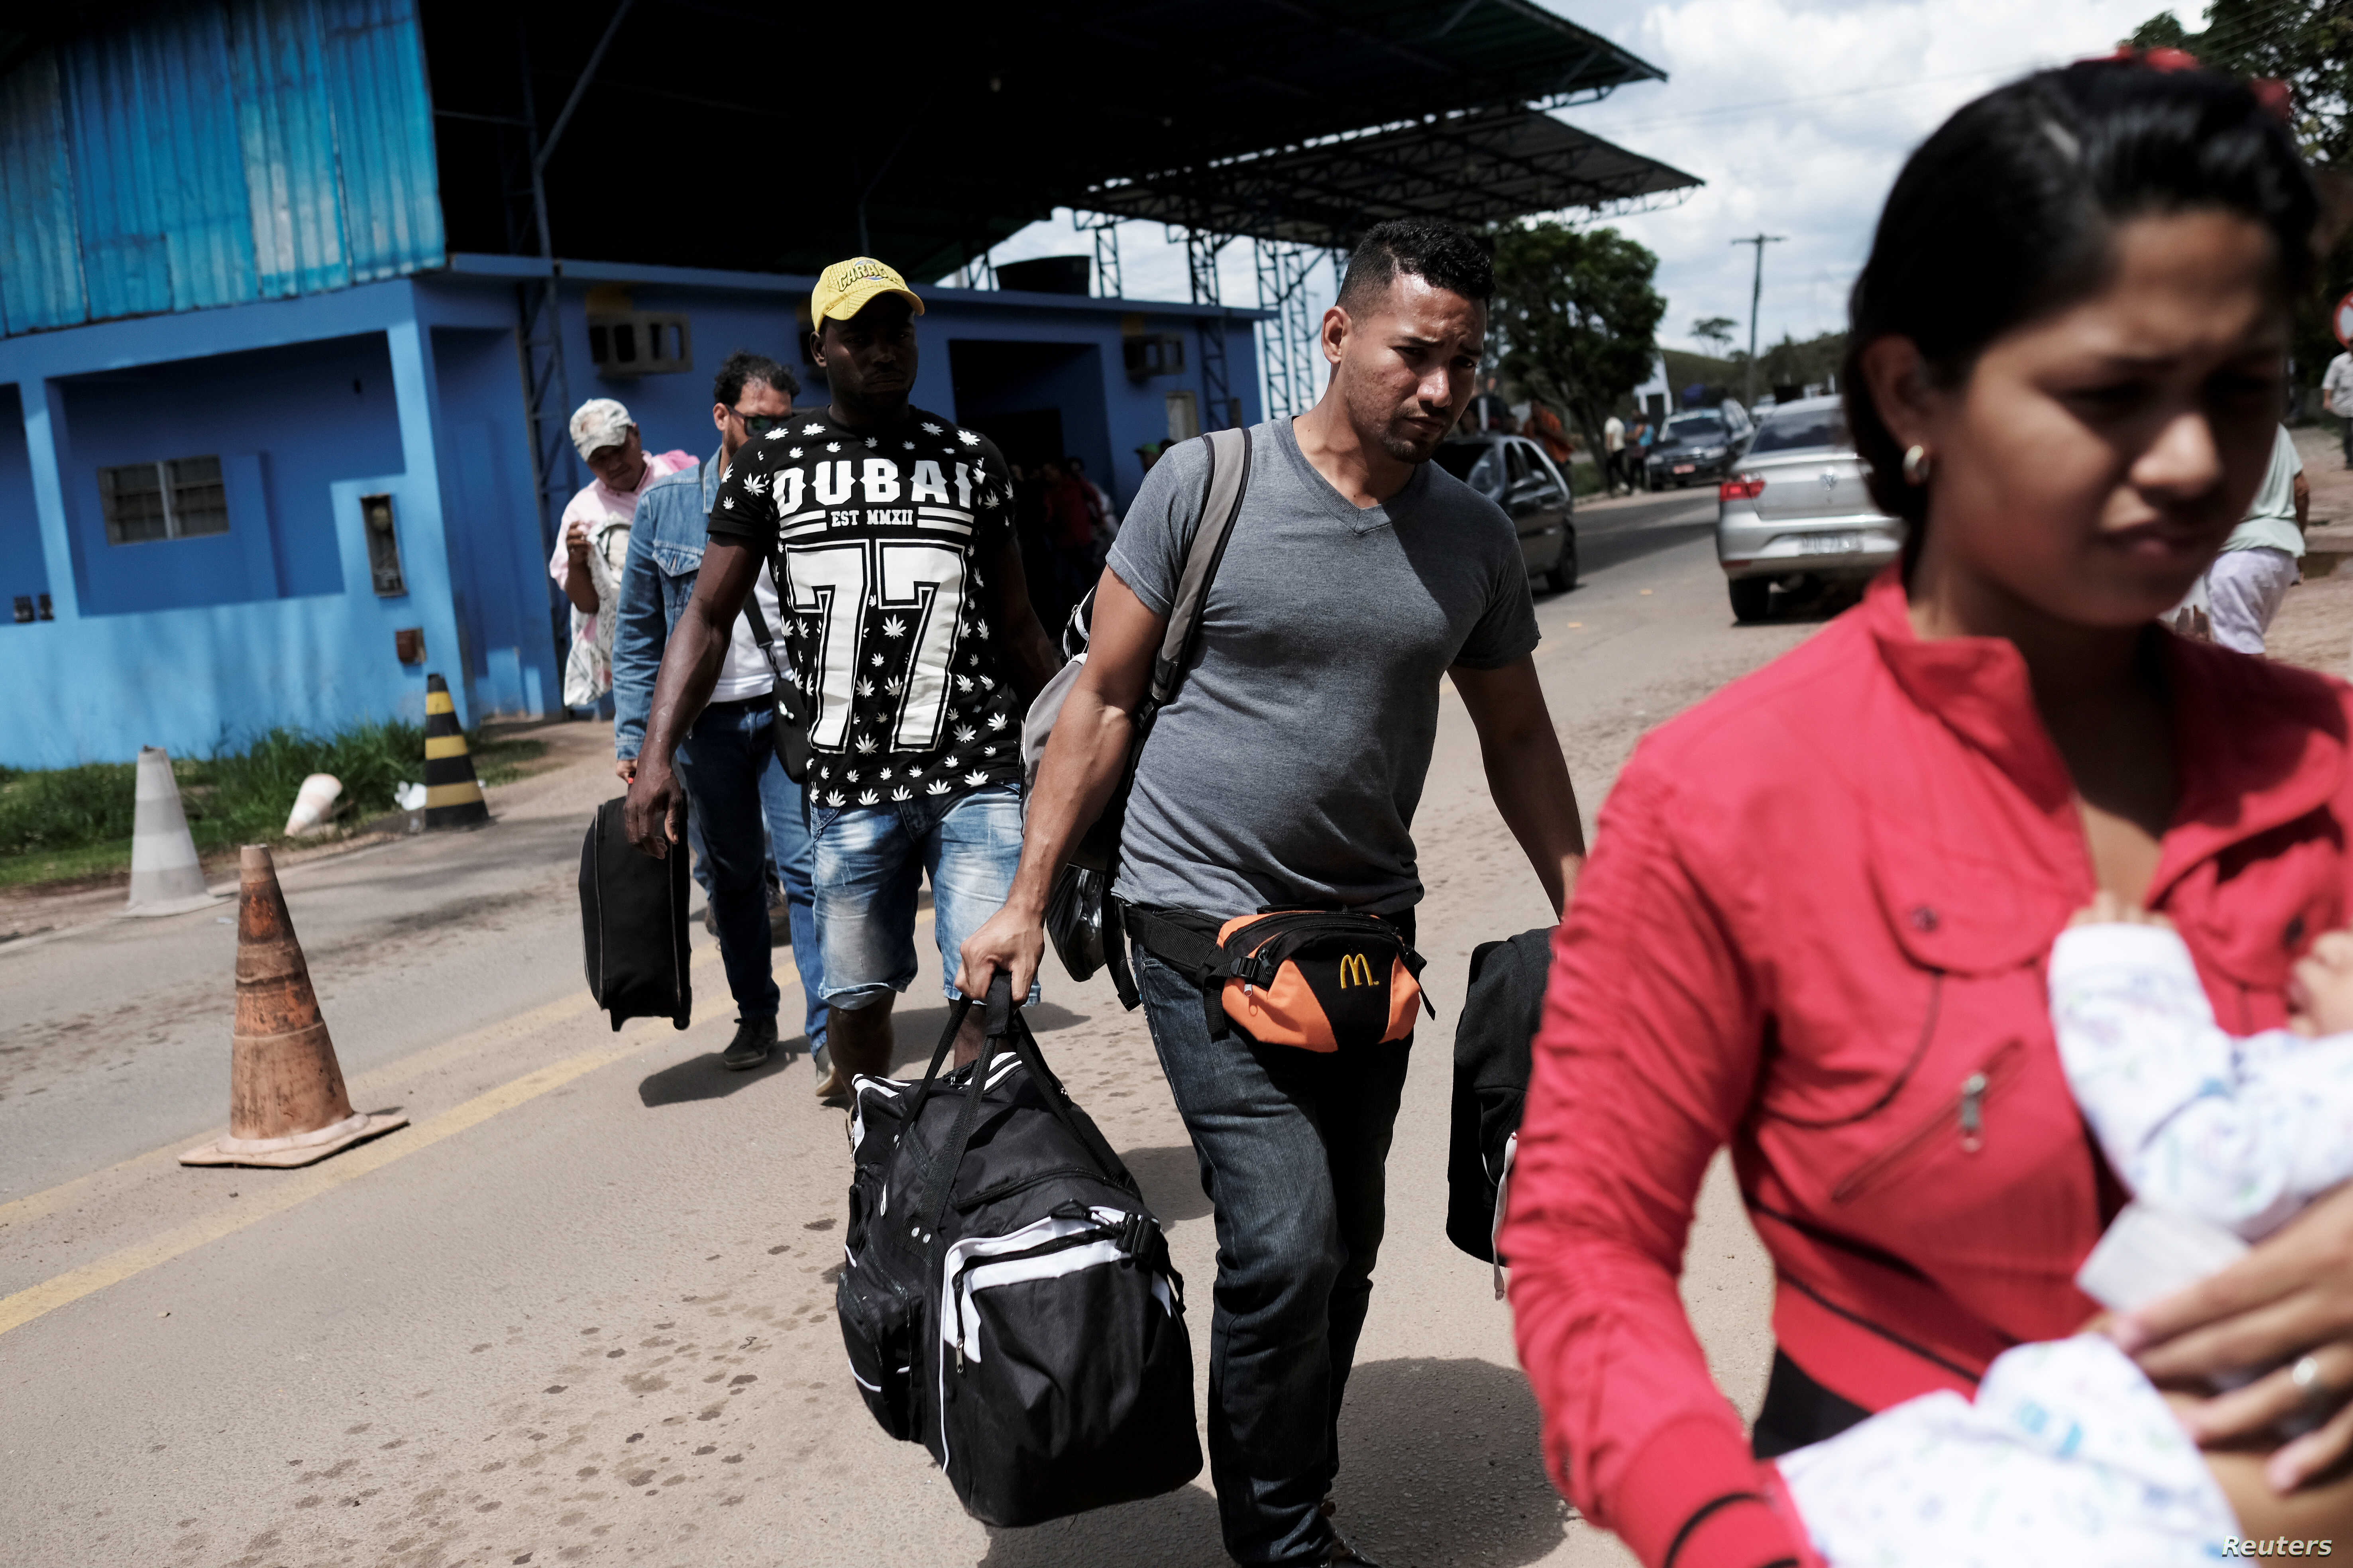 Venezuelans walk to show their passports or identity cards at the Pacaraima border control, Roraima state, Brazil Nov. 16, 2017. The border control is manned by Federal Police only during the day.